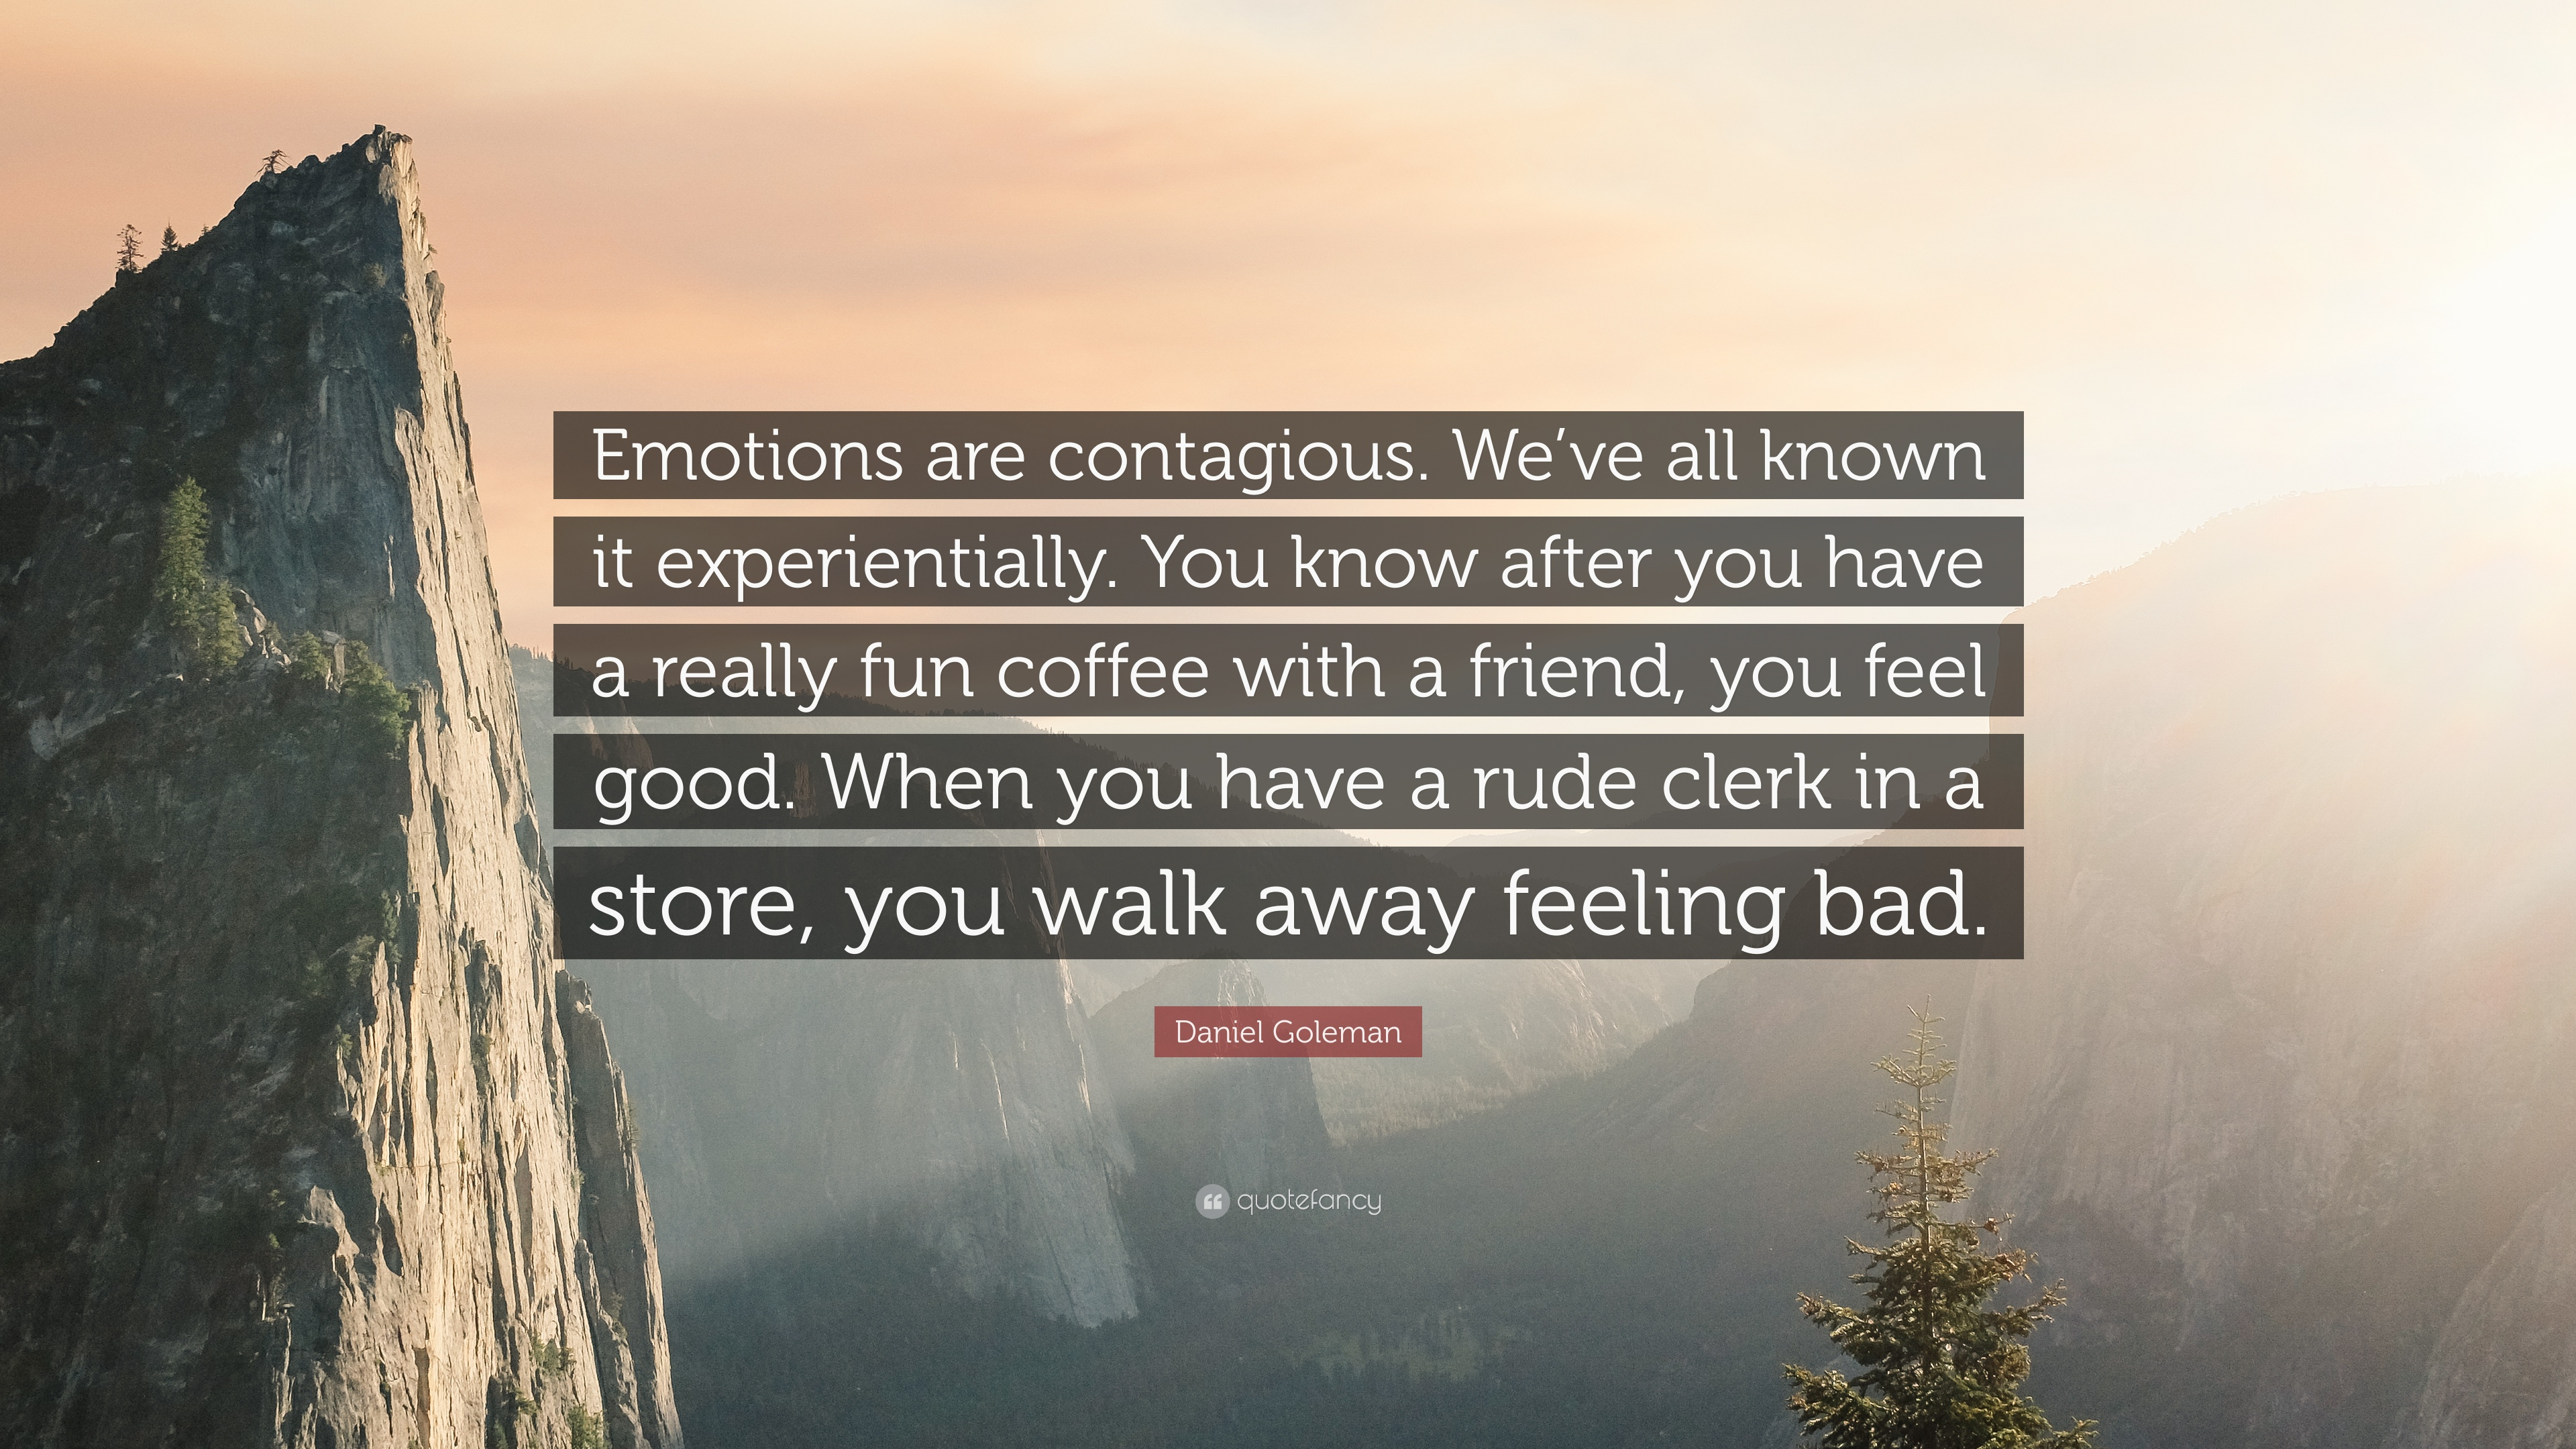 Daniel Goleman Quote Emotions Are Contagious We Ve All Known It Experientially You Know After You Have A Really Fun Coffee With A Friend Y 12 Wallpapers Quotefancy